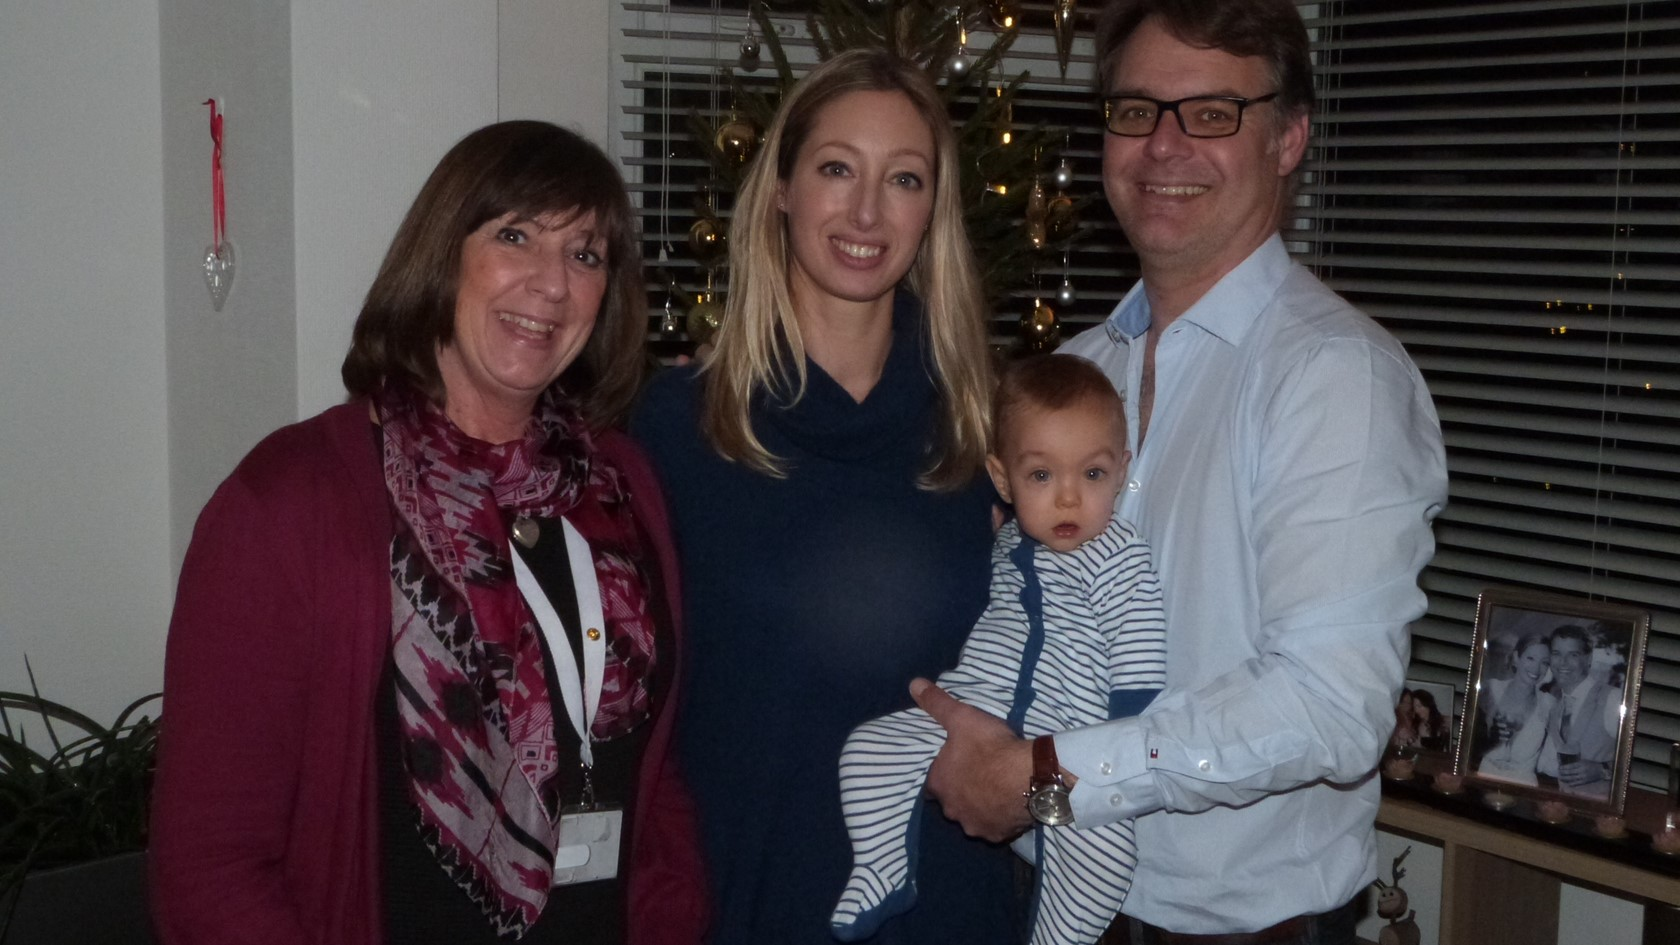 anna-jj-and-finn-anderson-and-health-visitor-marion-bradbury-crop.jpg